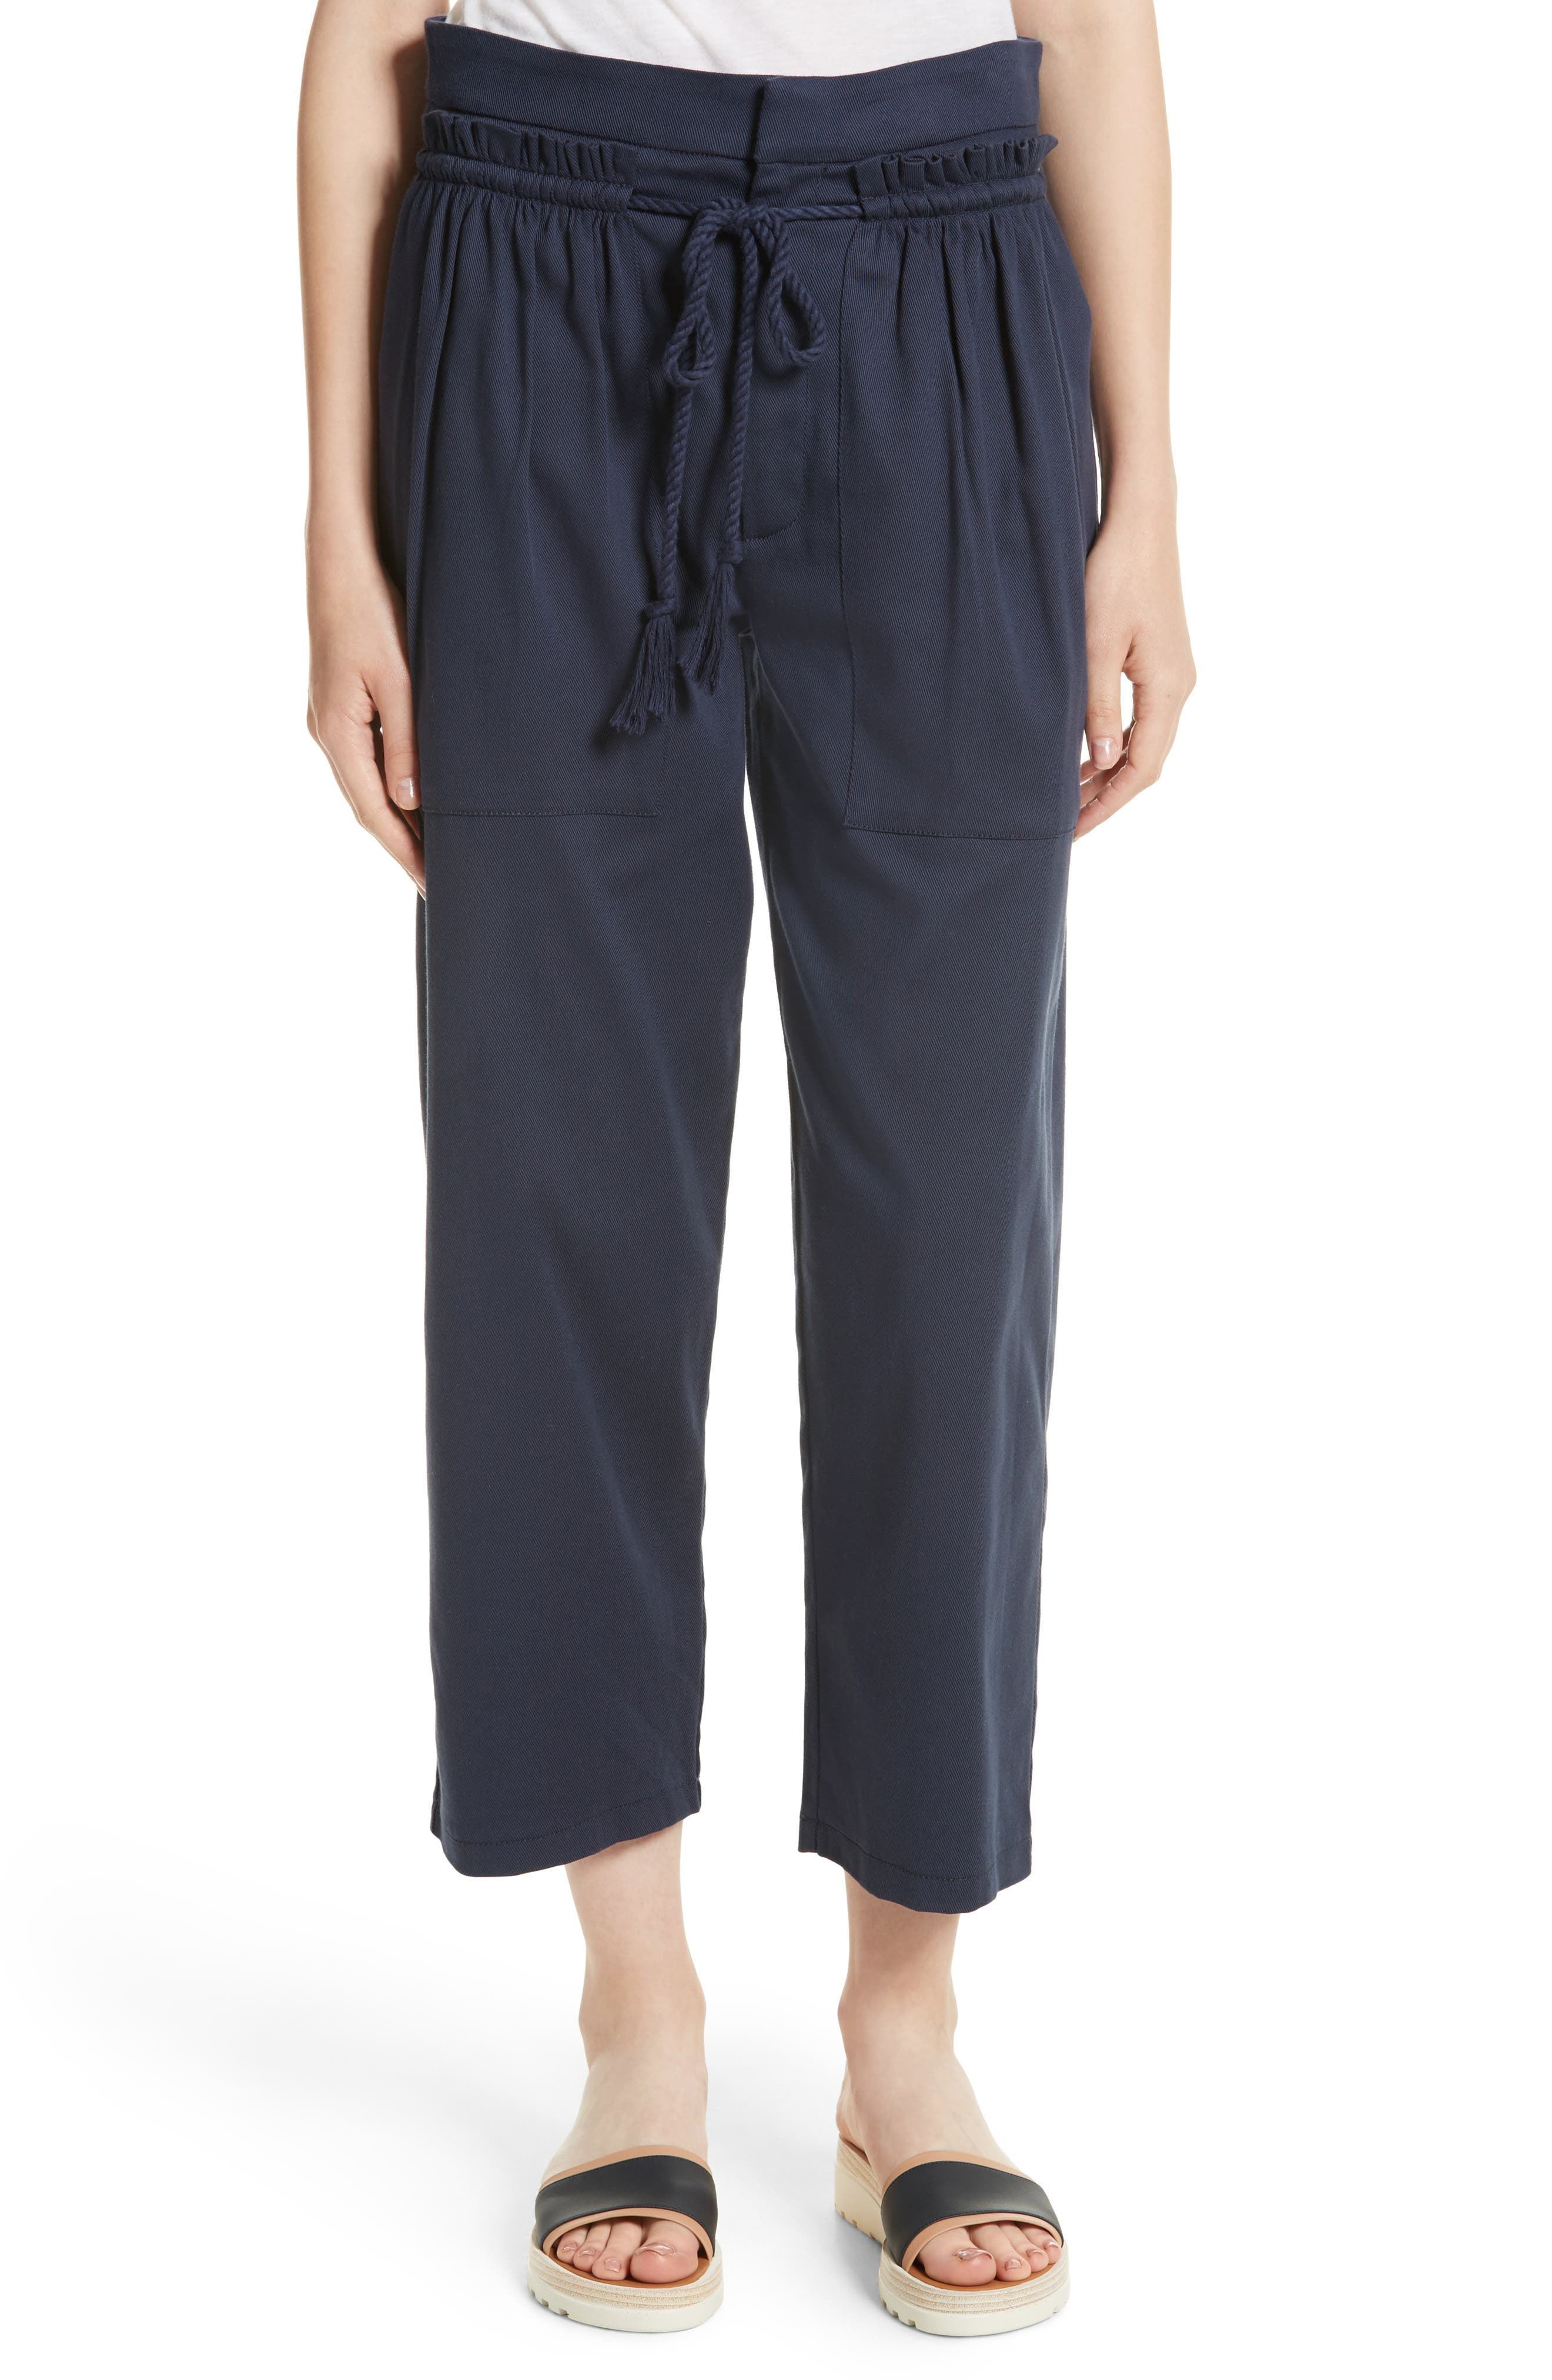 See by Chloé Ruffle Trim Drawstring Pants